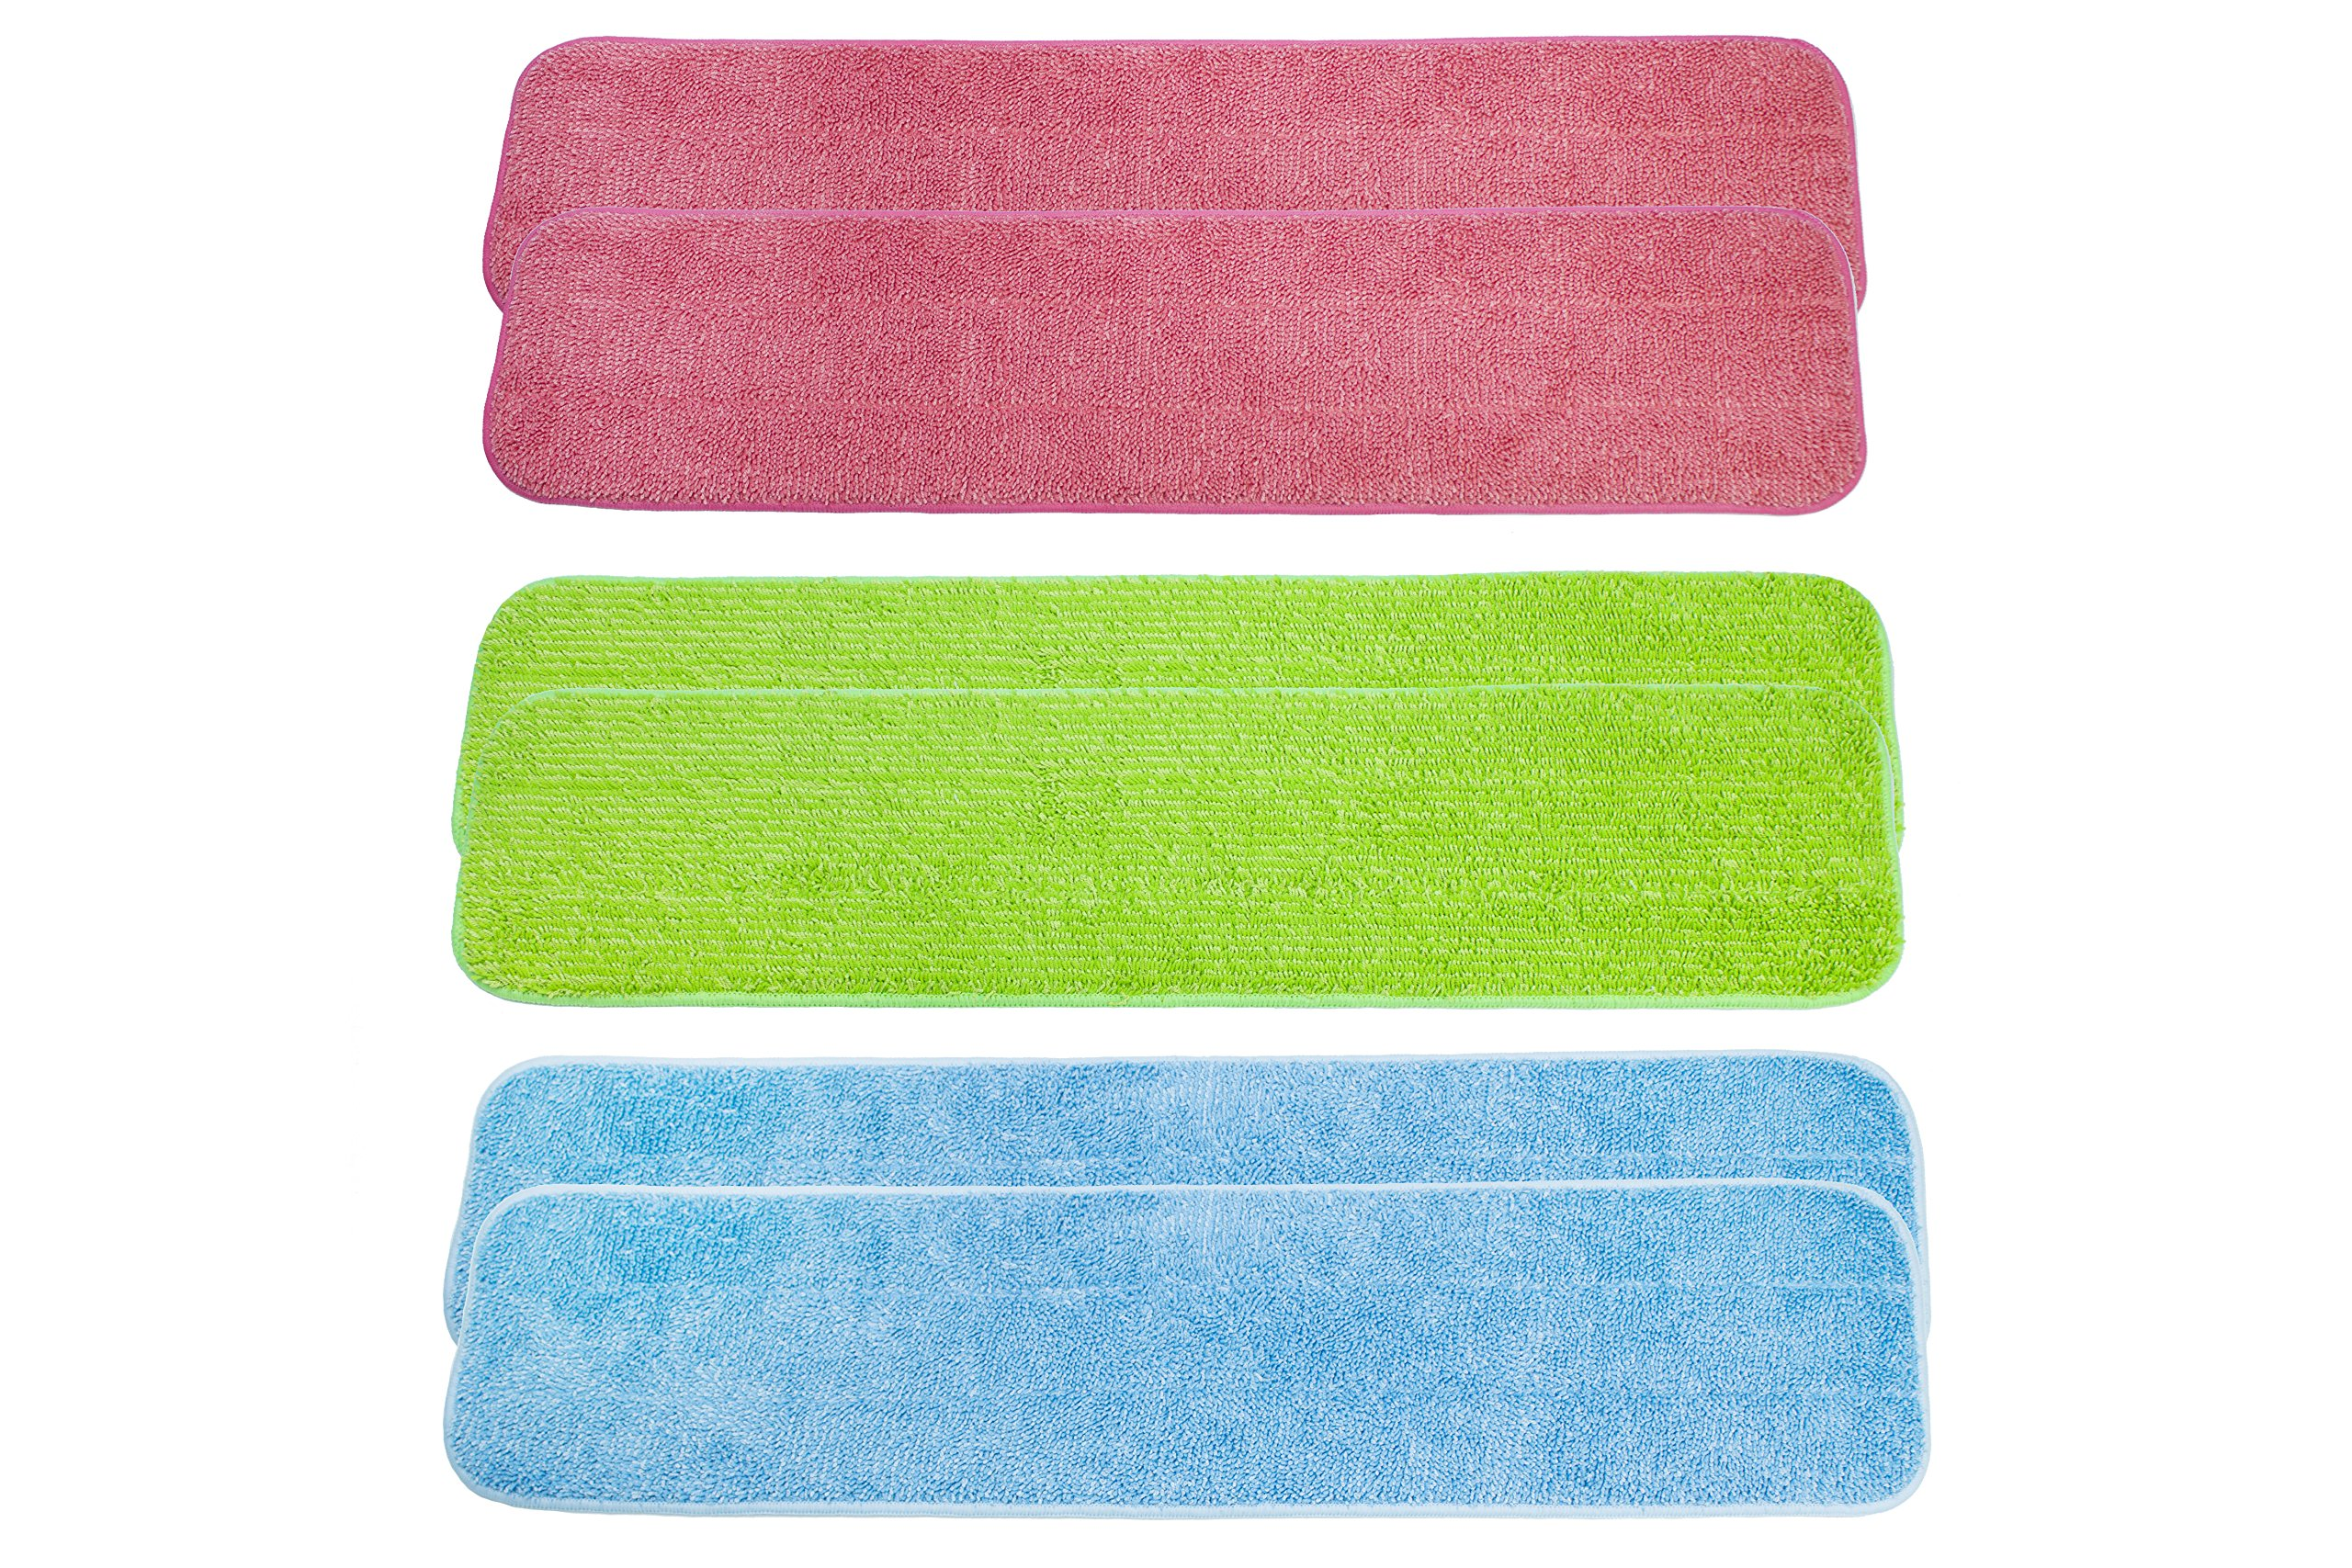 LTWHOME 24'' Multi-Color Combination Microfiber Commercial Mop Refill Pads Fit for Wet or Dry Floor Cleaning (Pack of 6)